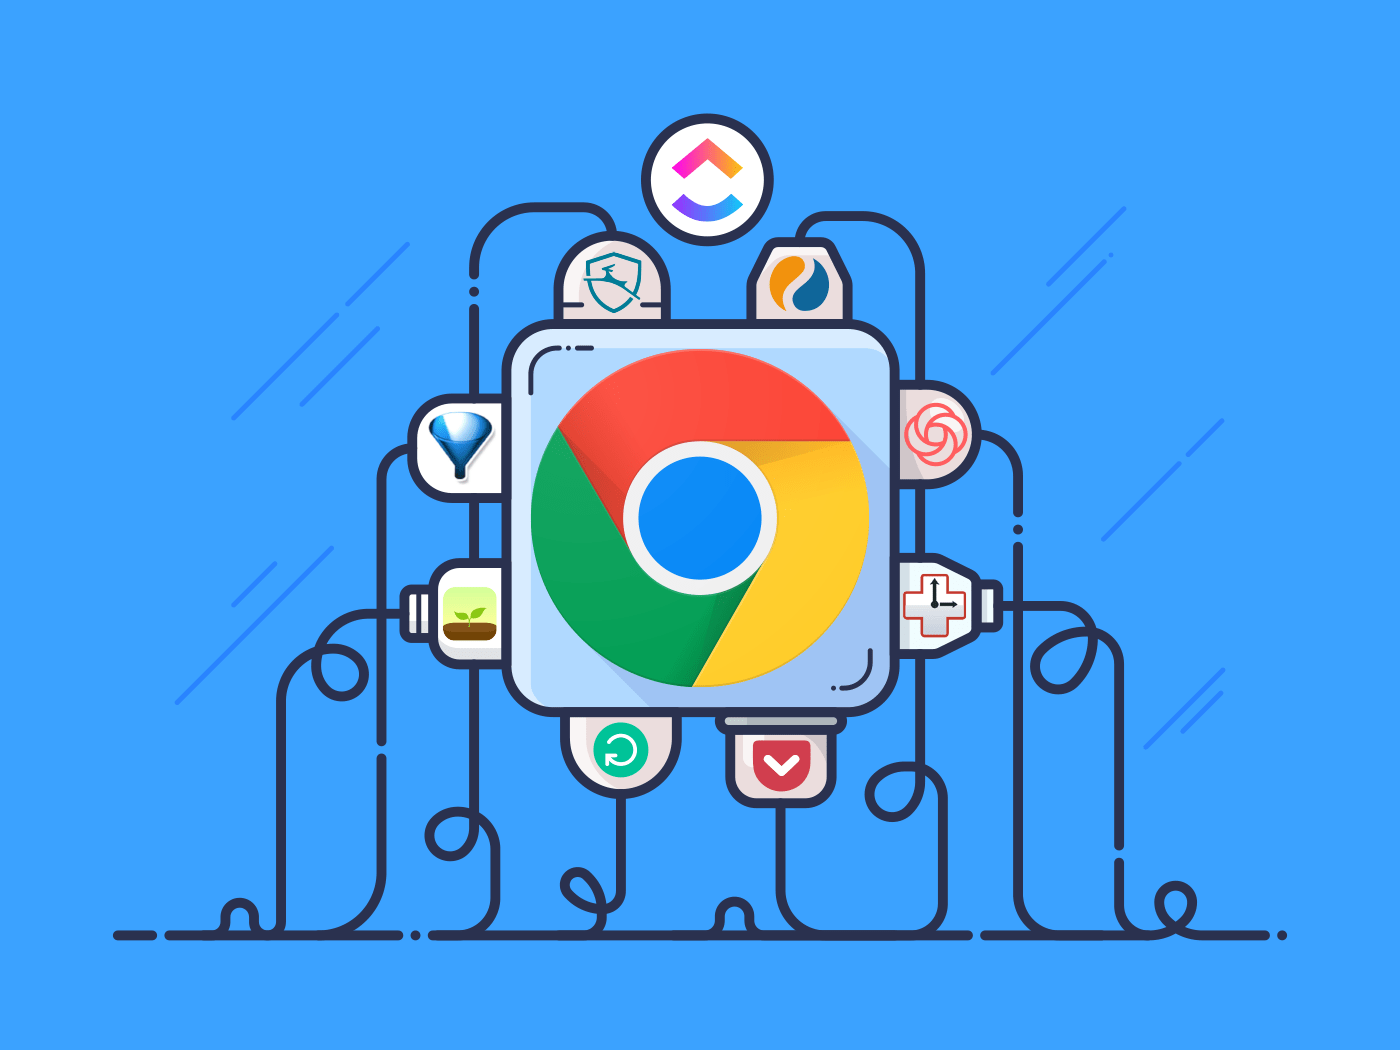 21 Best Chrome Extensions for Productivity in 2019